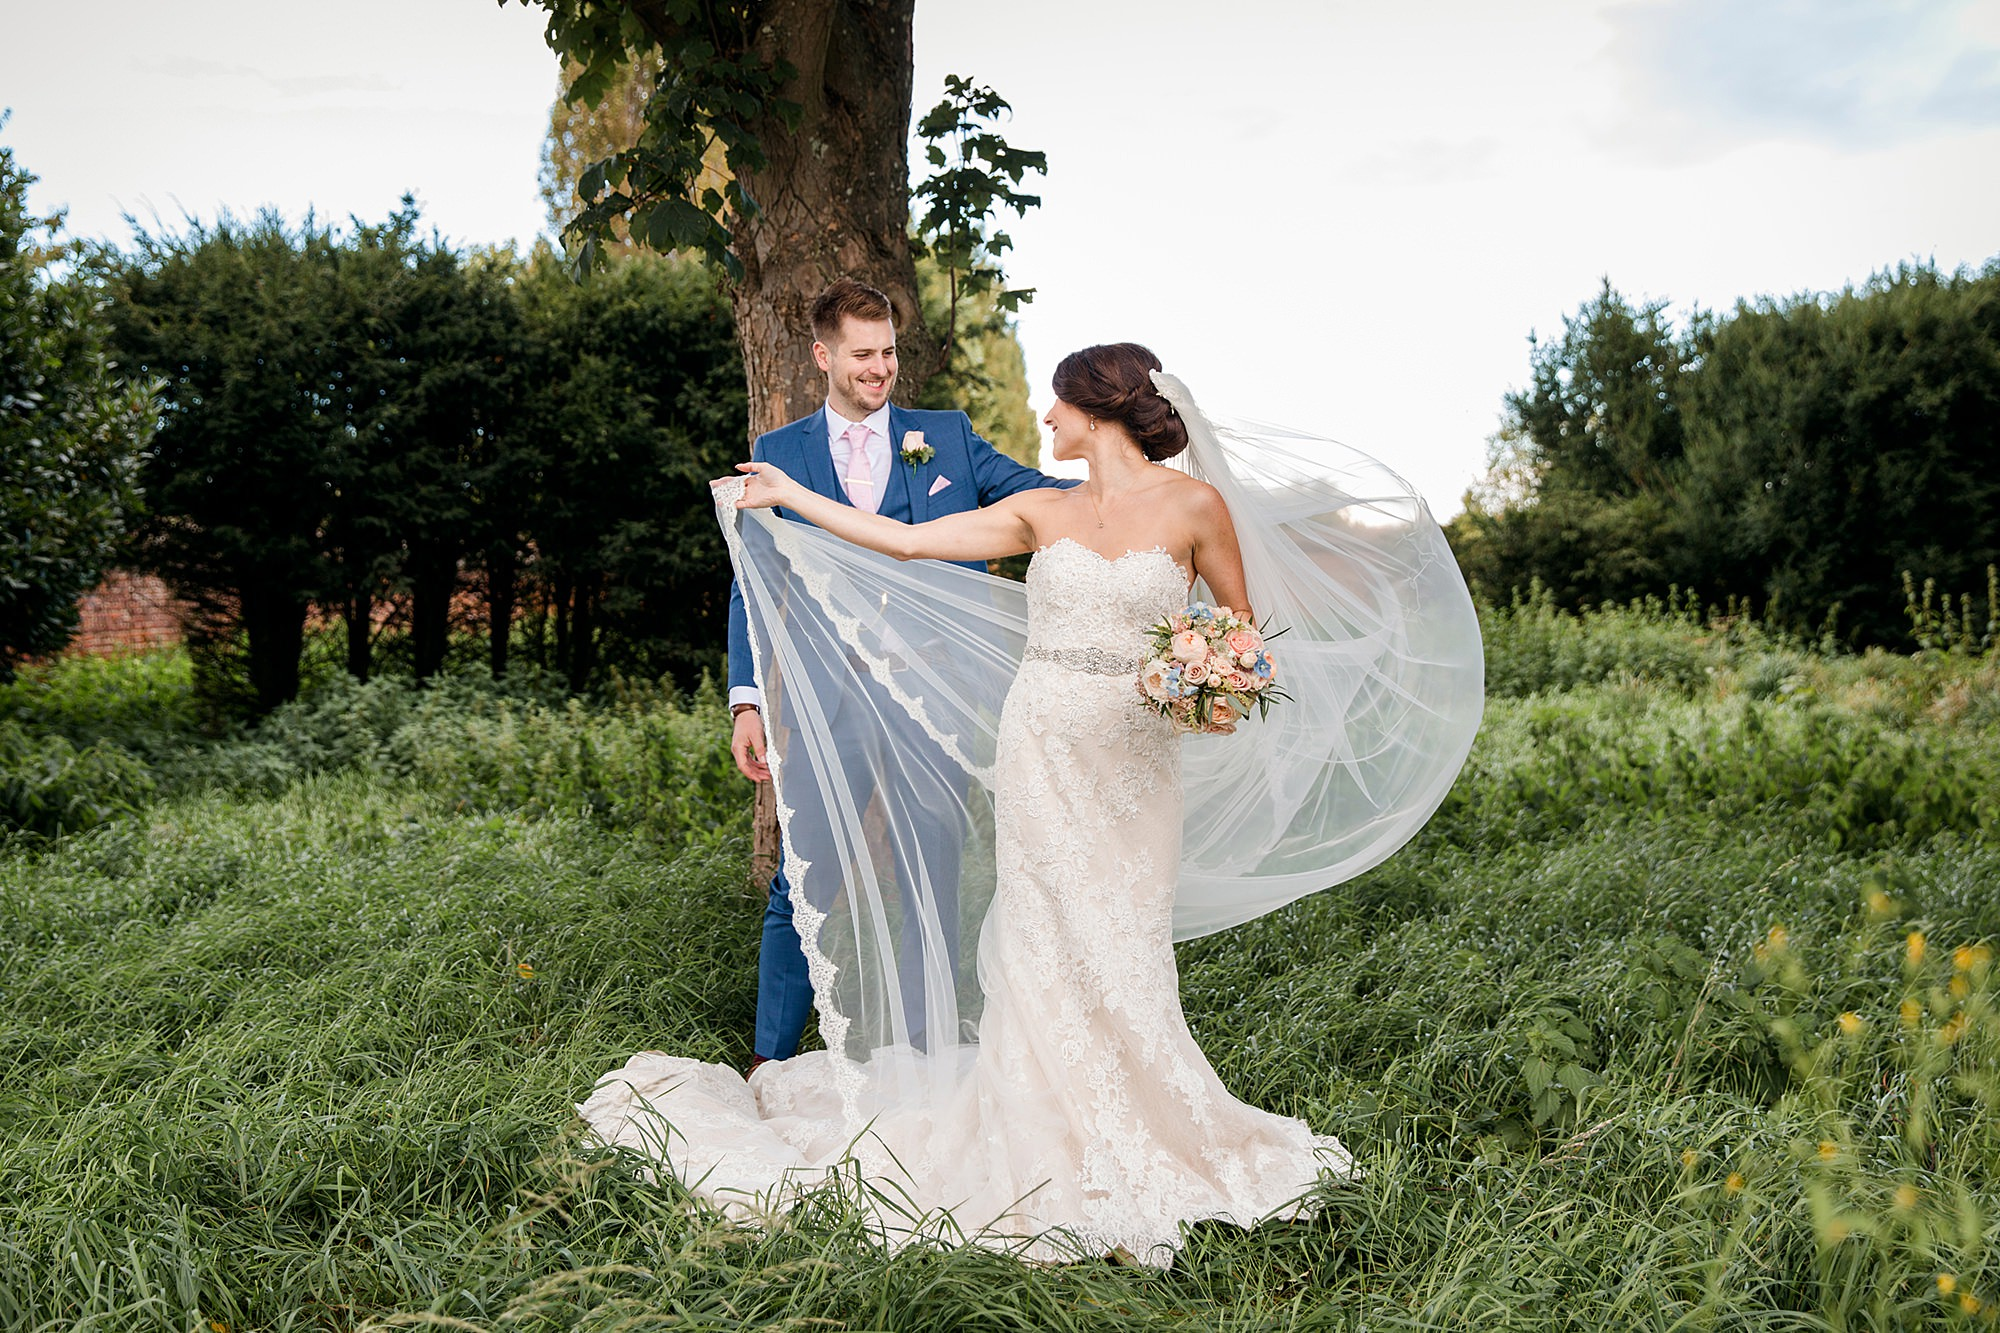 Lillibrooke Manor wedding bride's veil blows in the wind